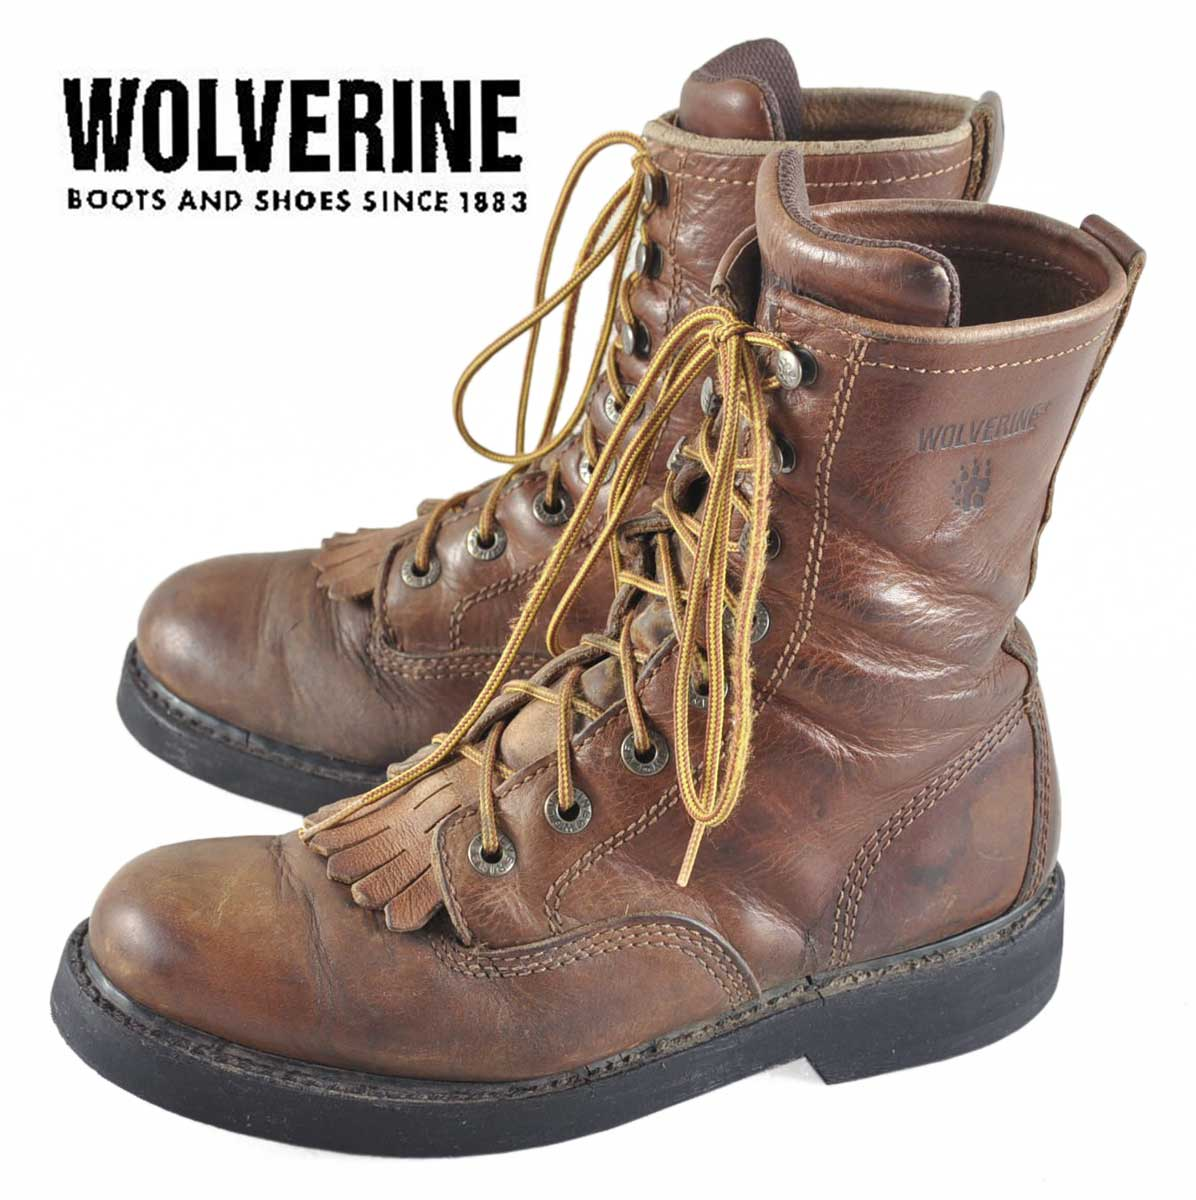 39cd686818d WOLVERINE Wolverine   folstein lace-up work boots   brown leather    JPN26.0cm equivalent 1